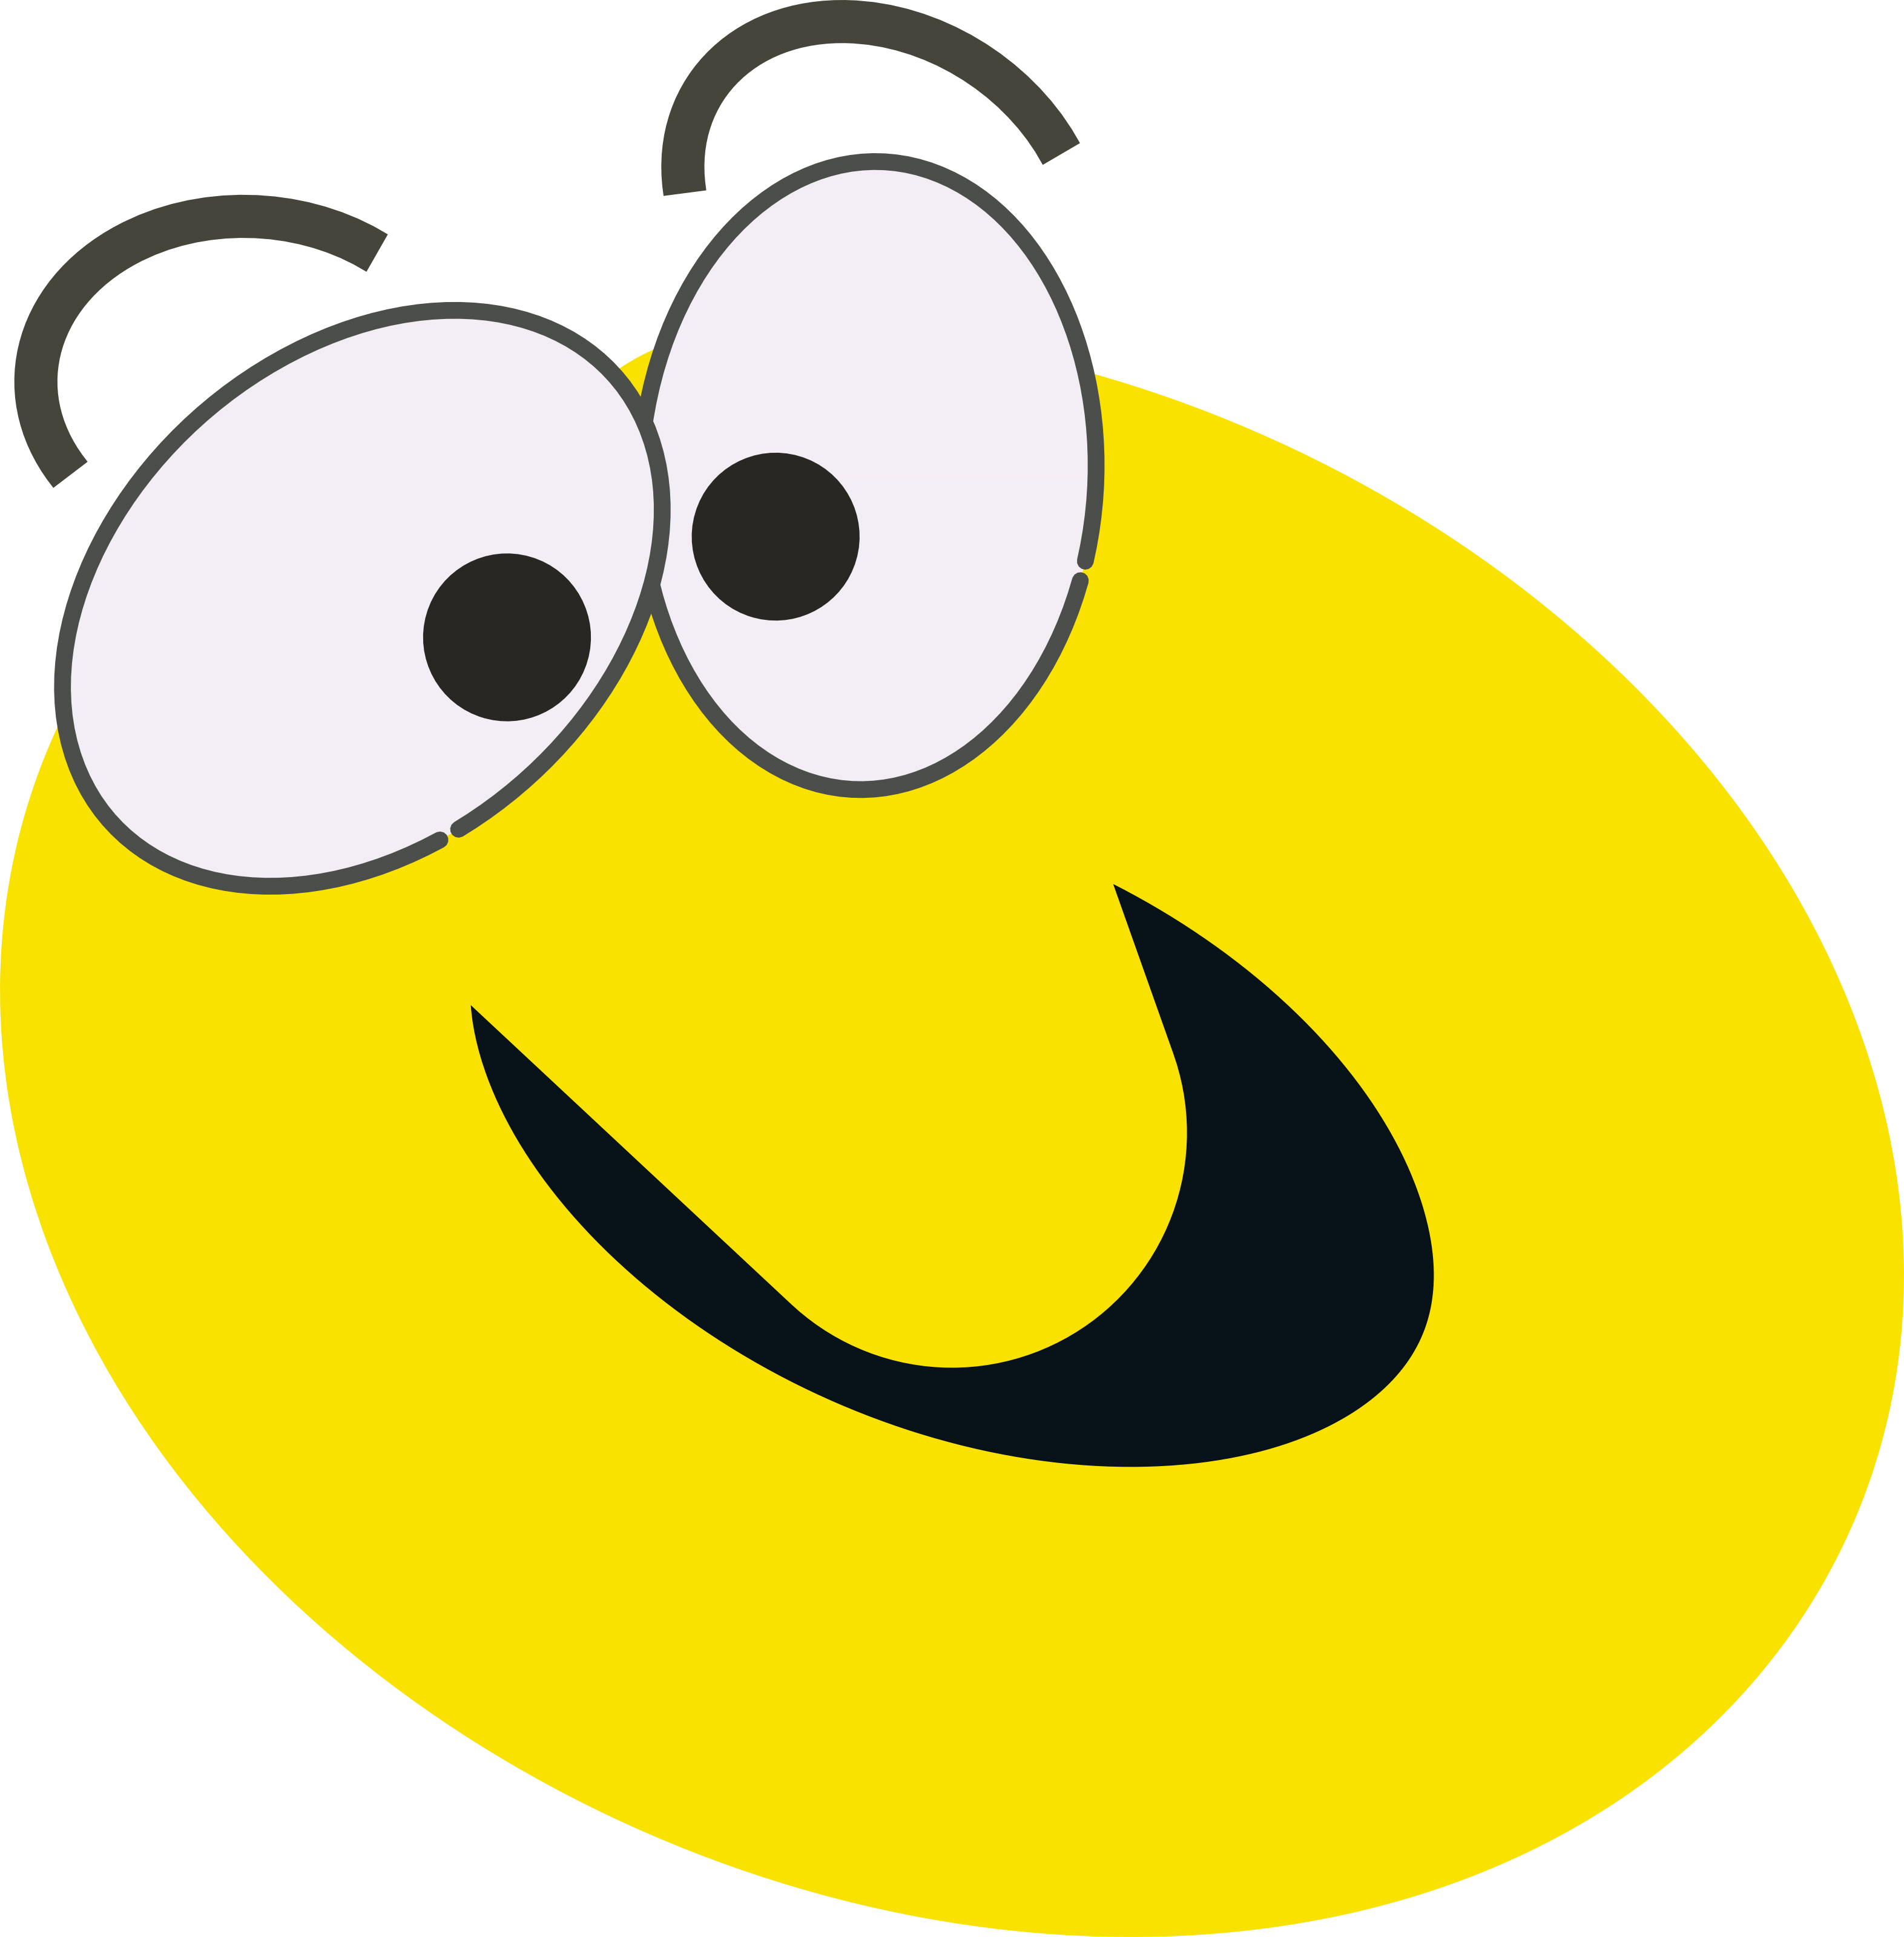 free smiling apple clipart - photo #26